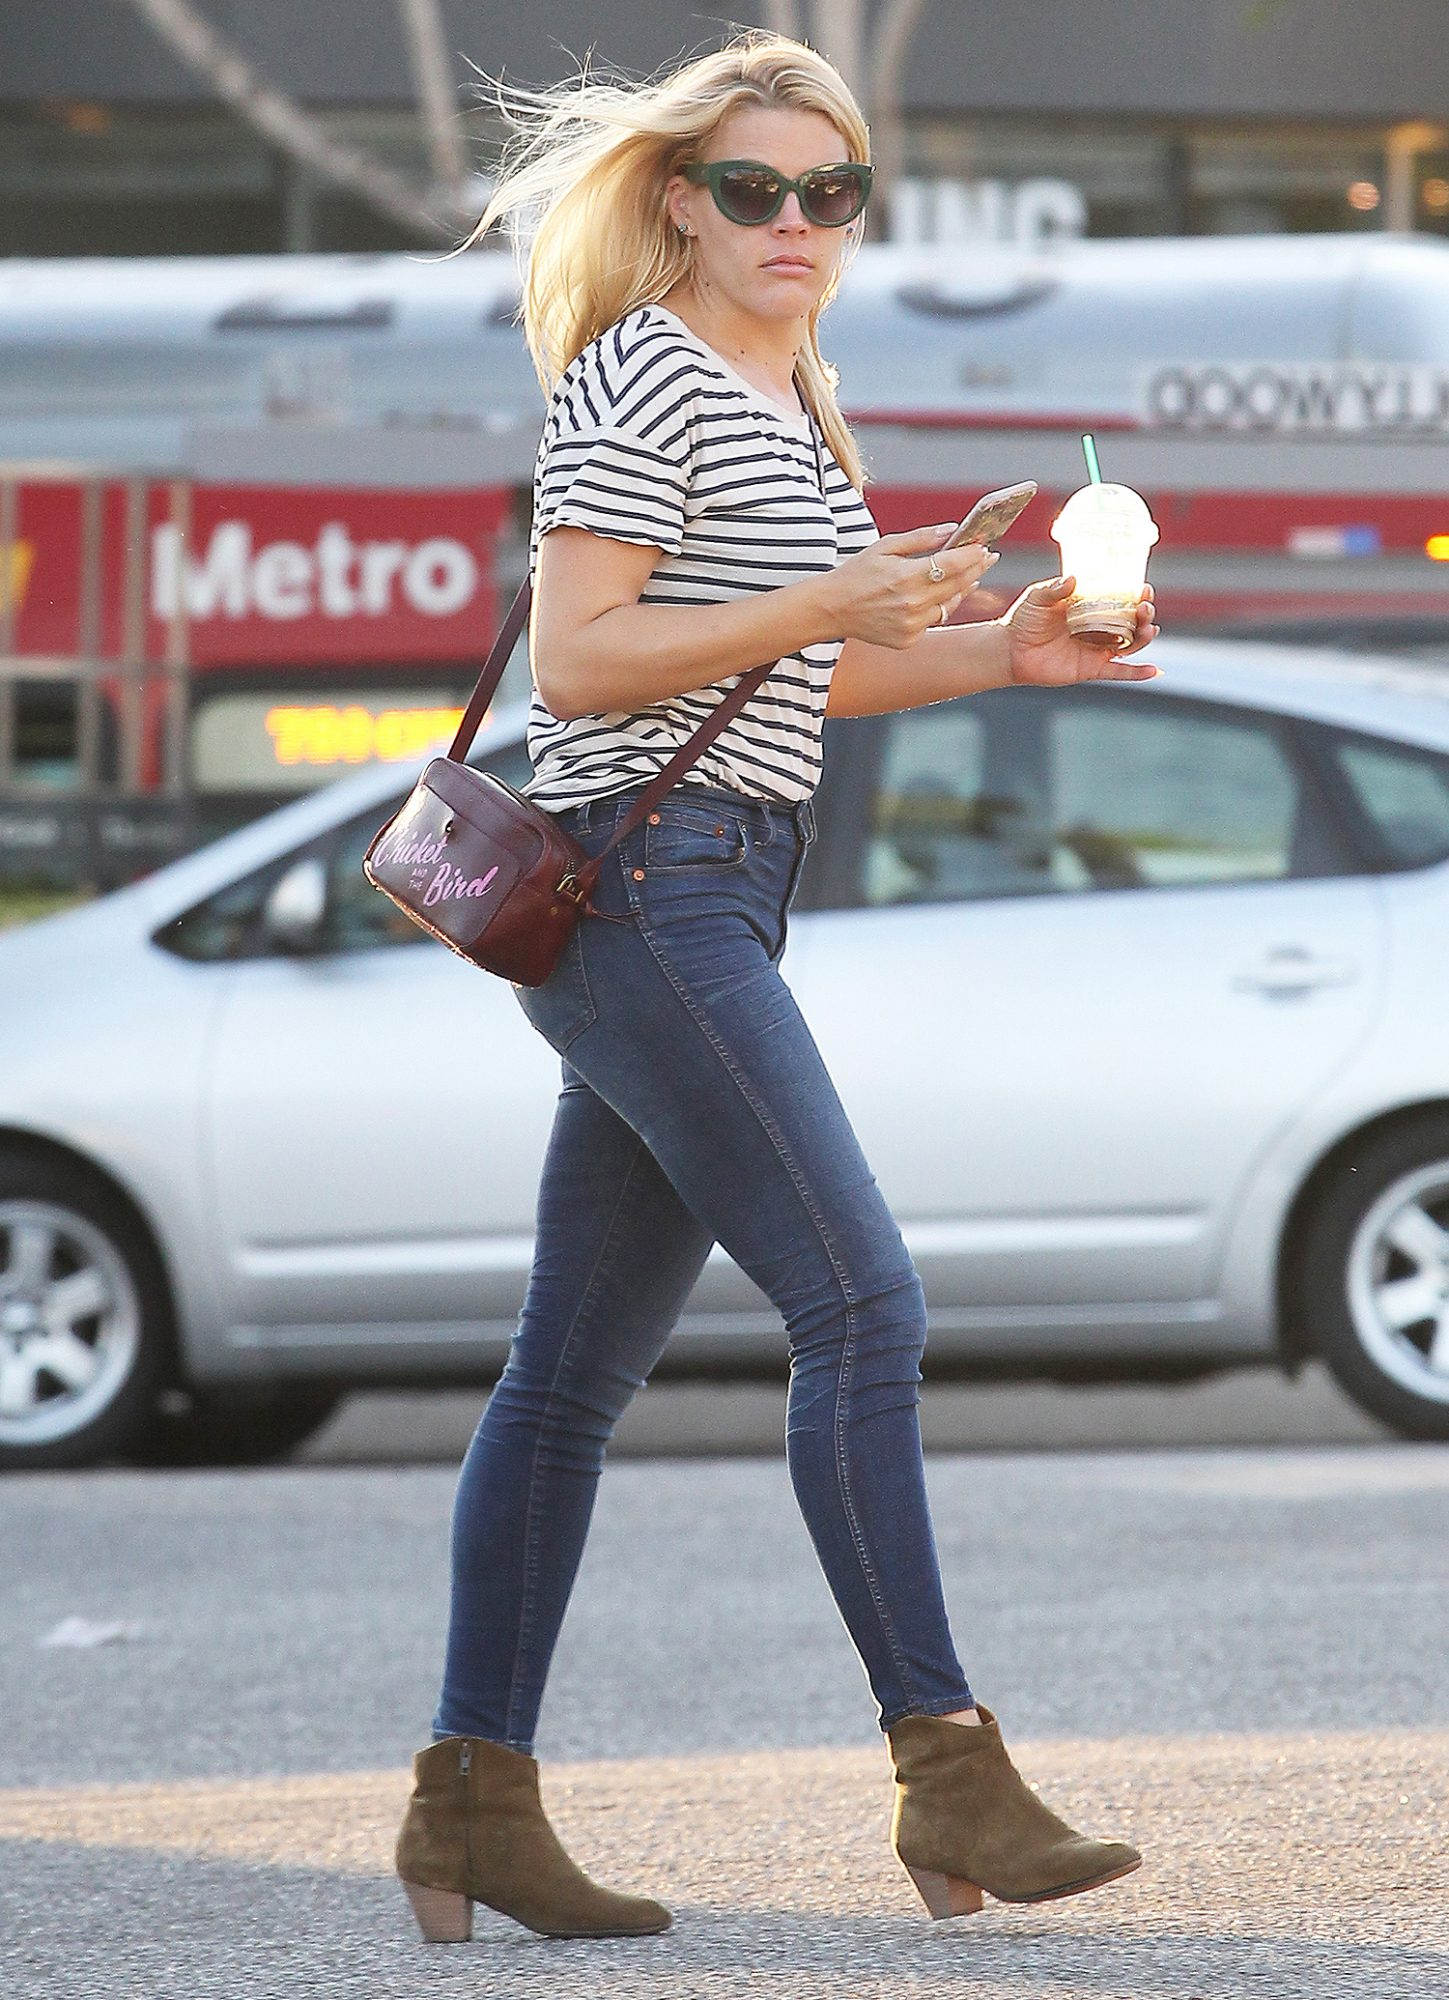 *EXCLUSIVE* Busy Philipps grabs a golden hour Frappuccino